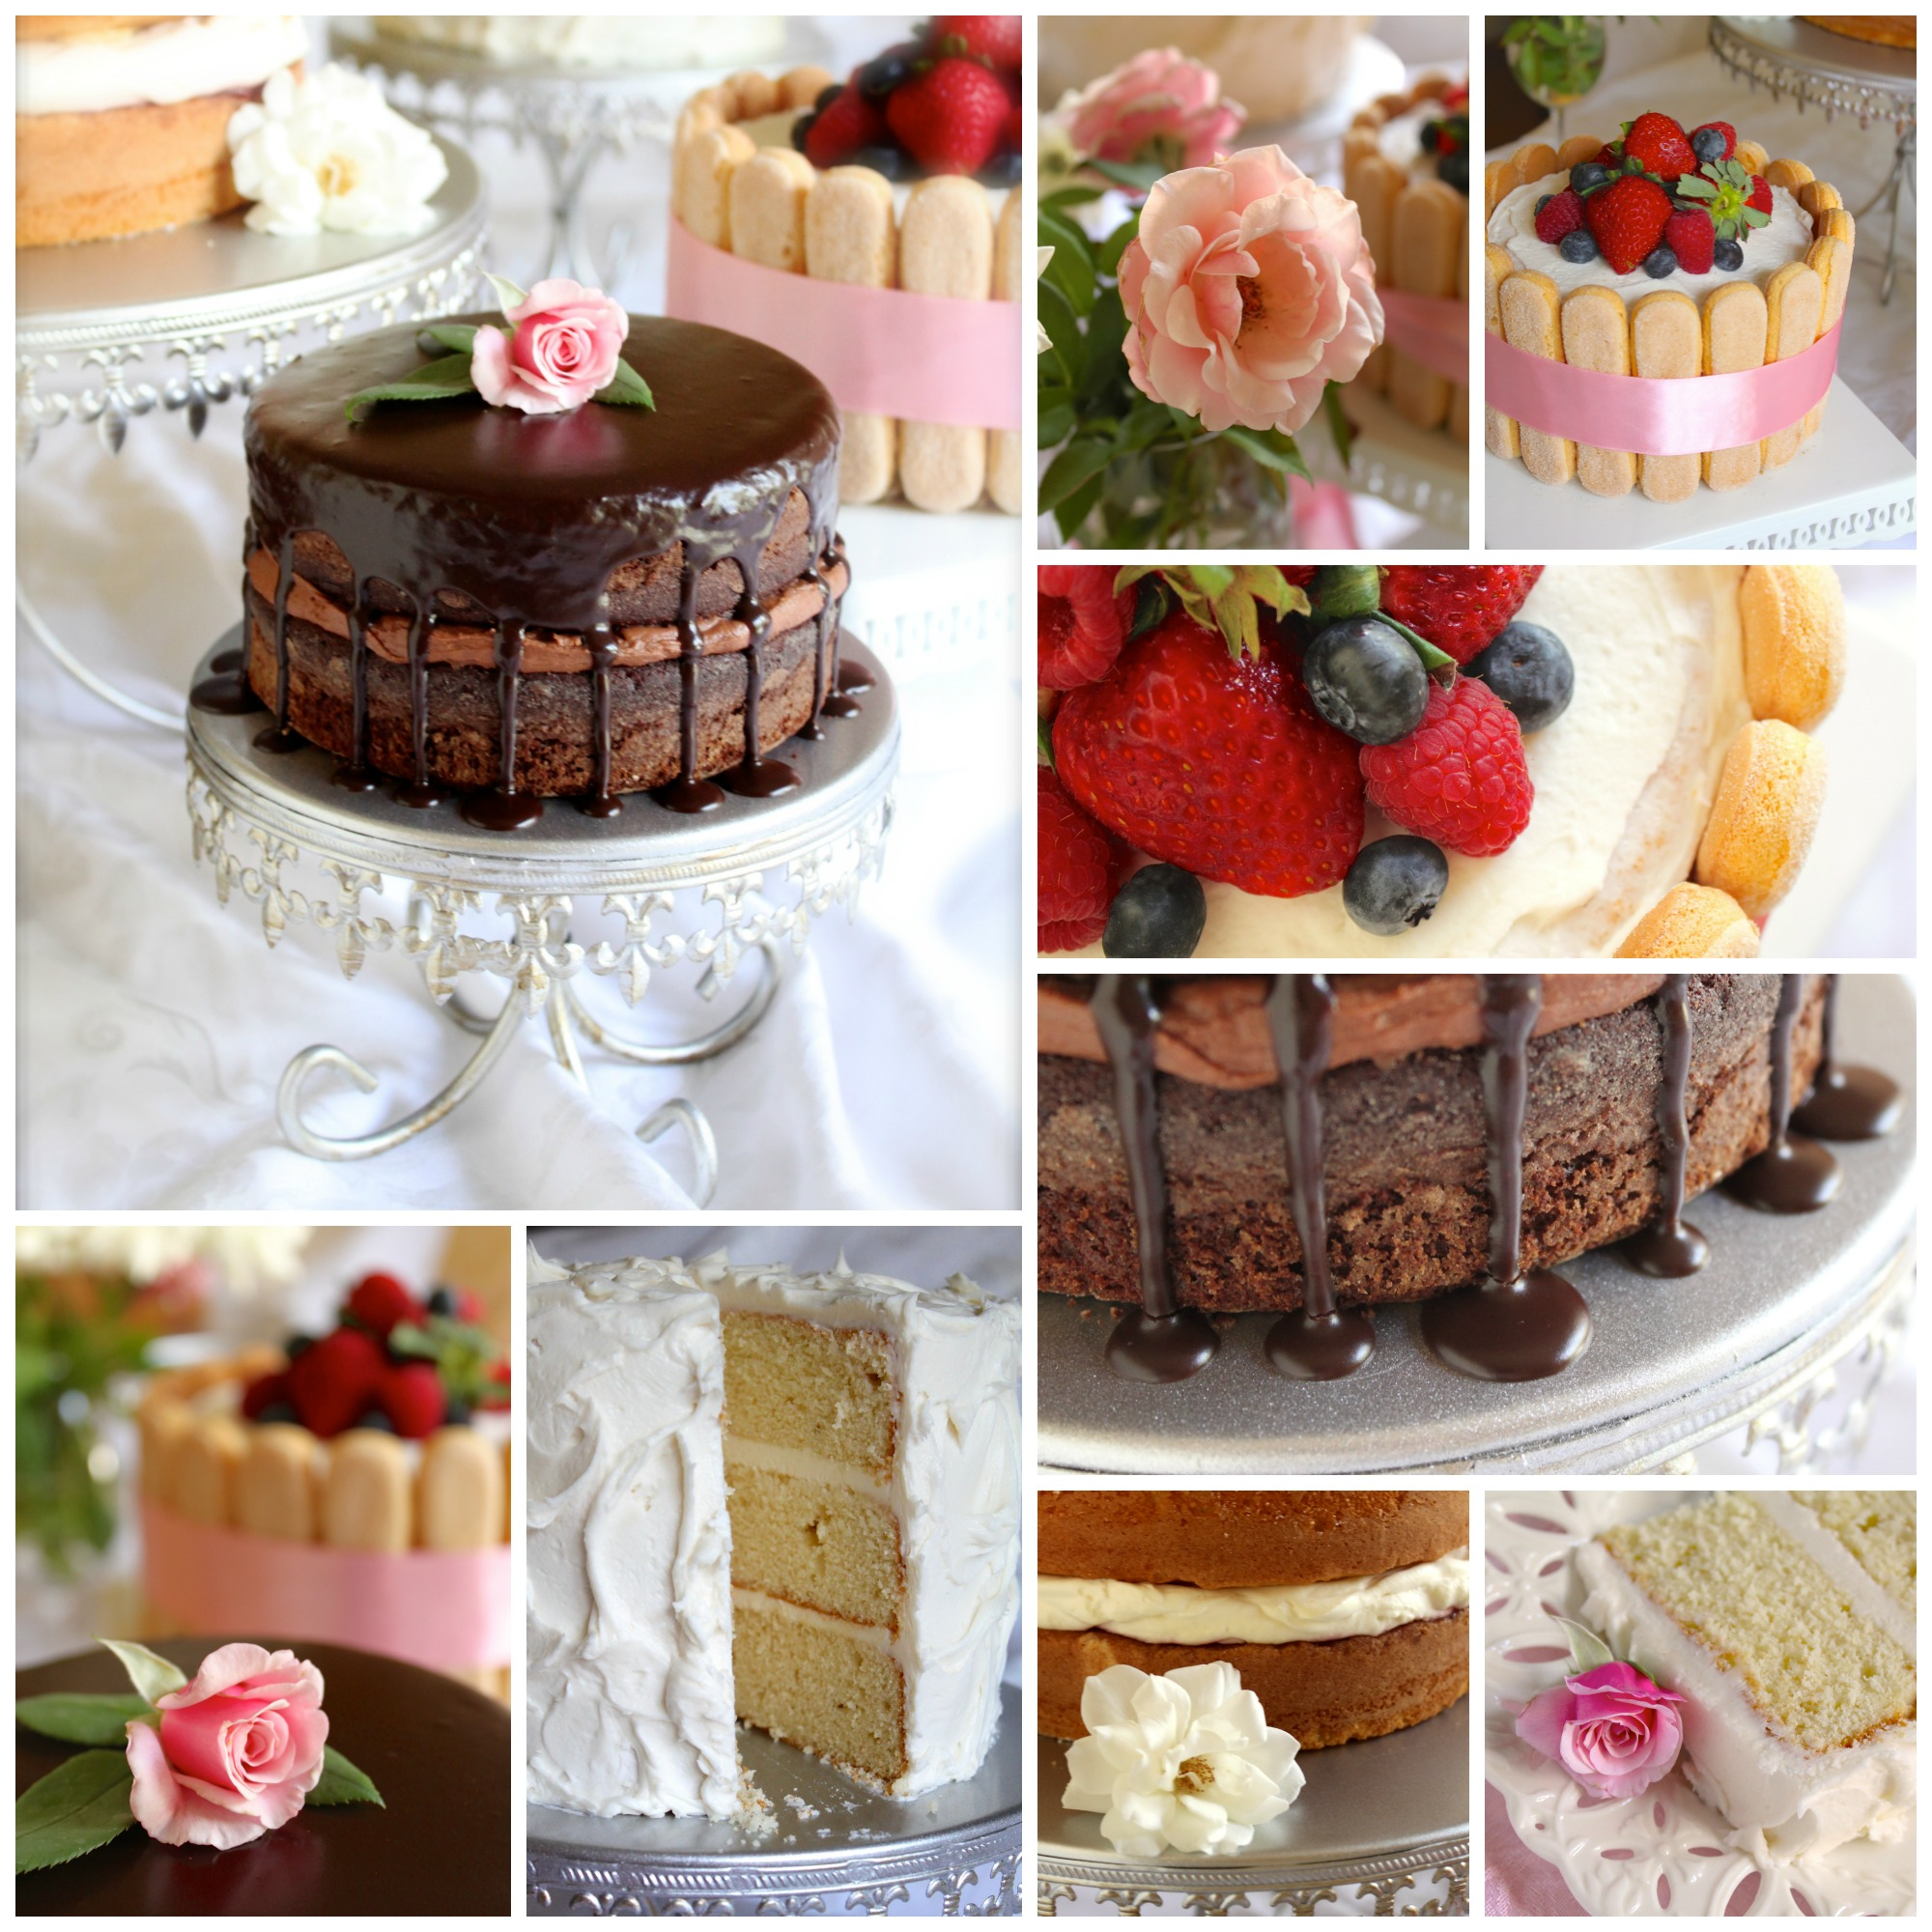 A Cake Decorating Tutorial For Impressive Results For The